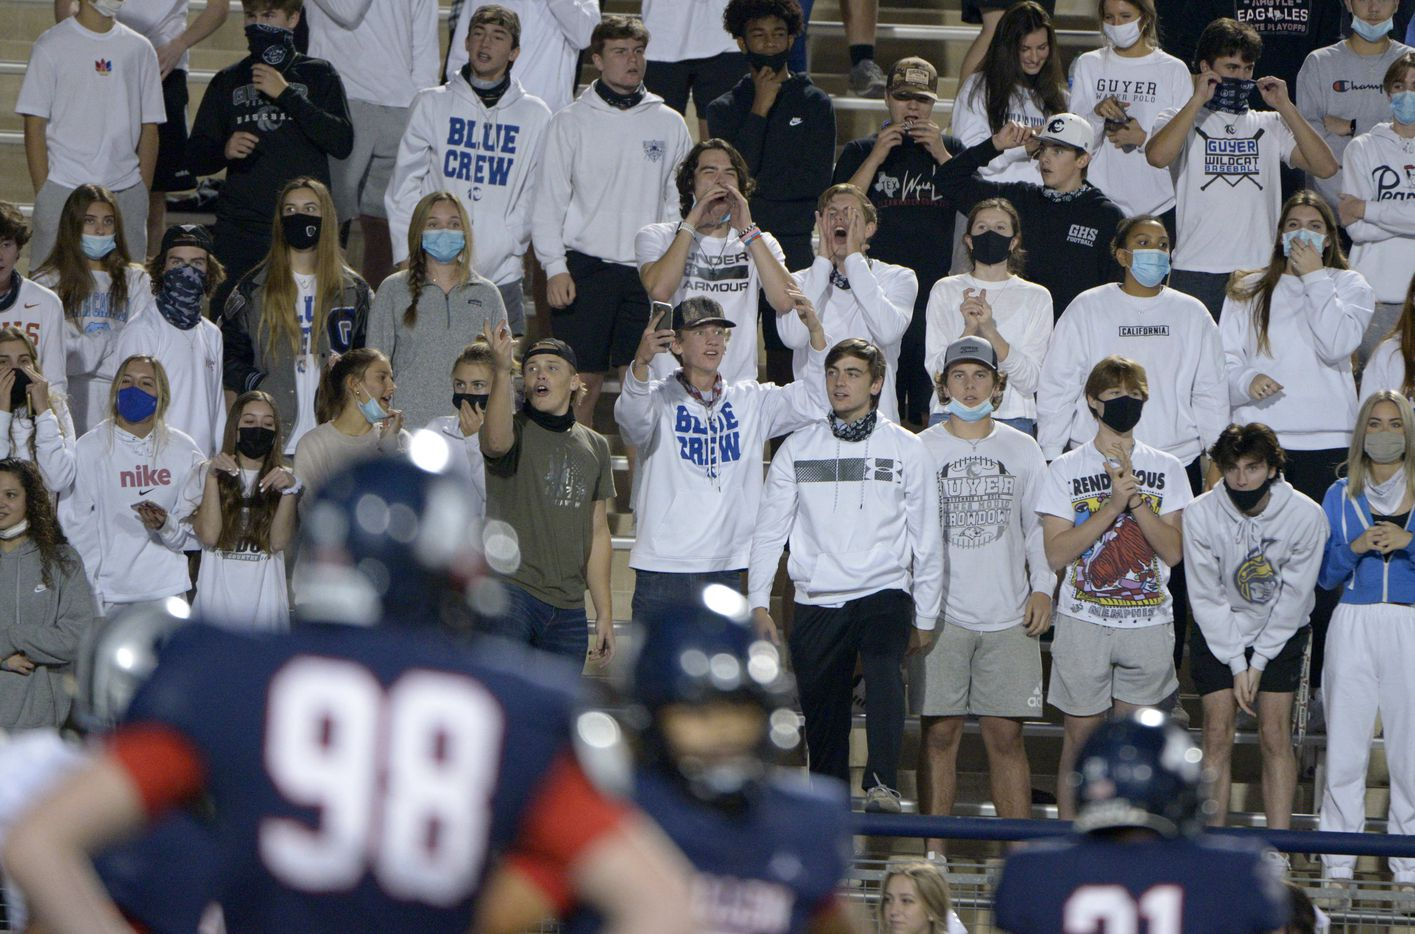 The Denton Guyer student section reacts to a call in the third quarter of a high school football game between Denton Guyer and Allen, Friday, Nov. 13, 2020, in Allen, Texas. (Matt Strasen/Special Contributor)